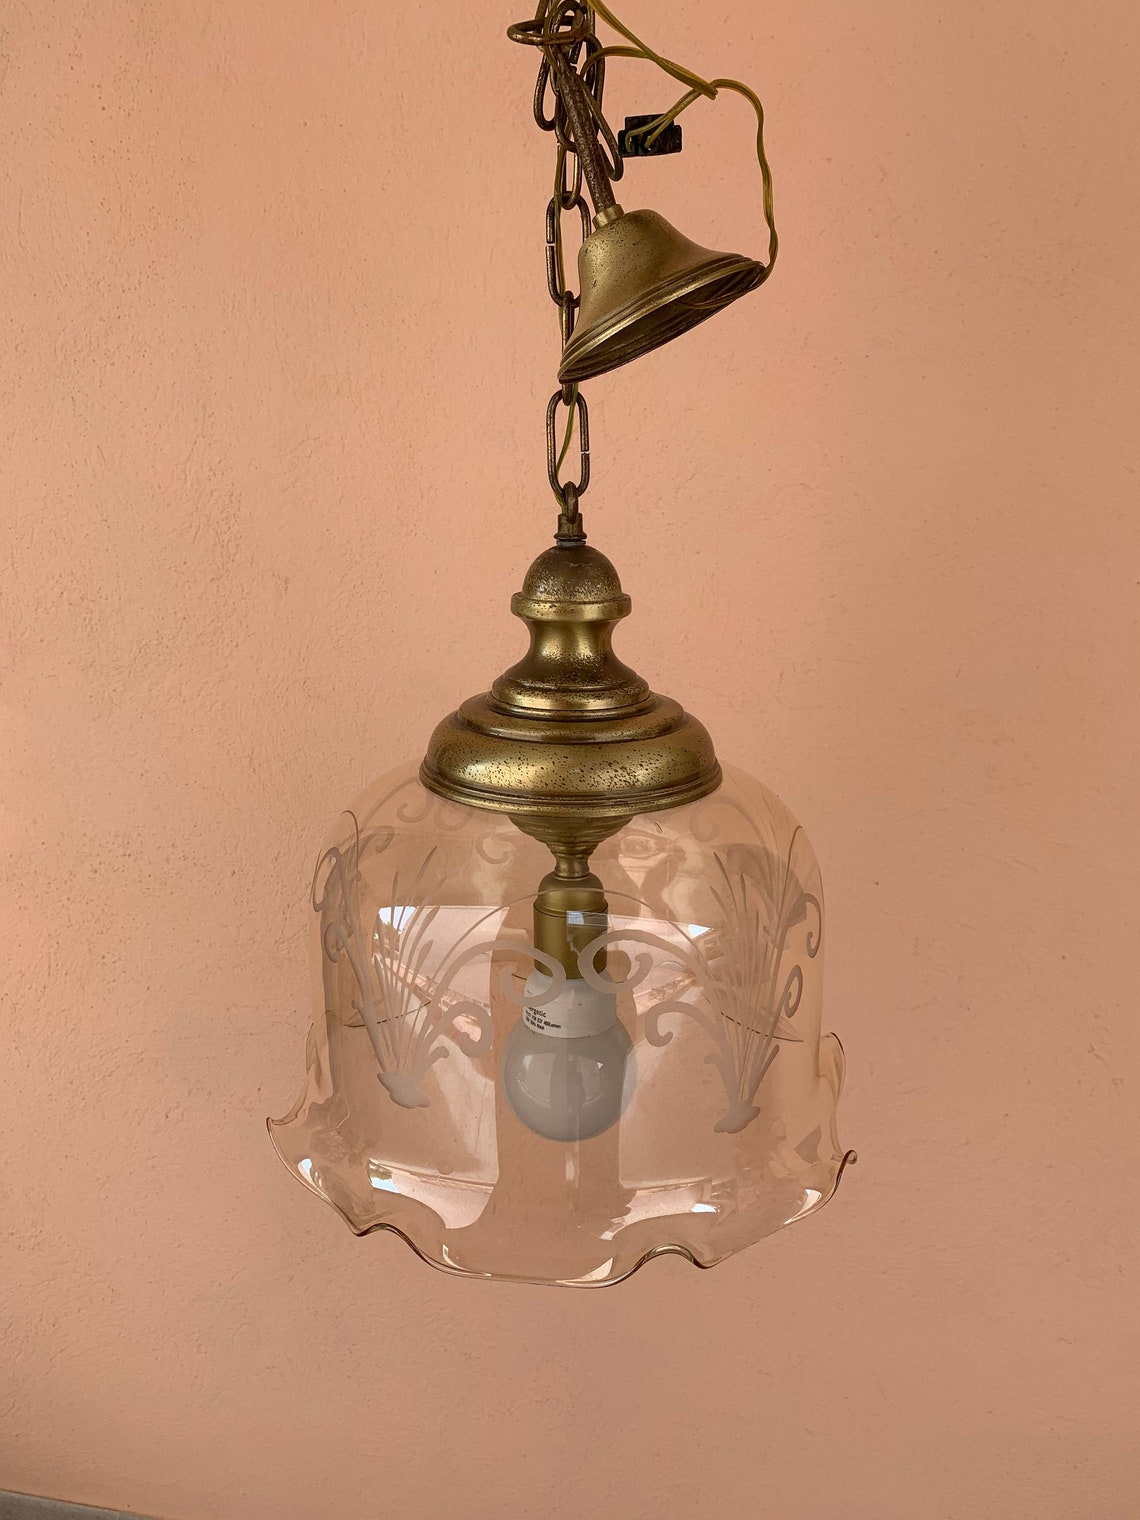 From Italy, vintage 1970 ceiling pendant lamp in glass with frilly edge and brass top - Eclairage